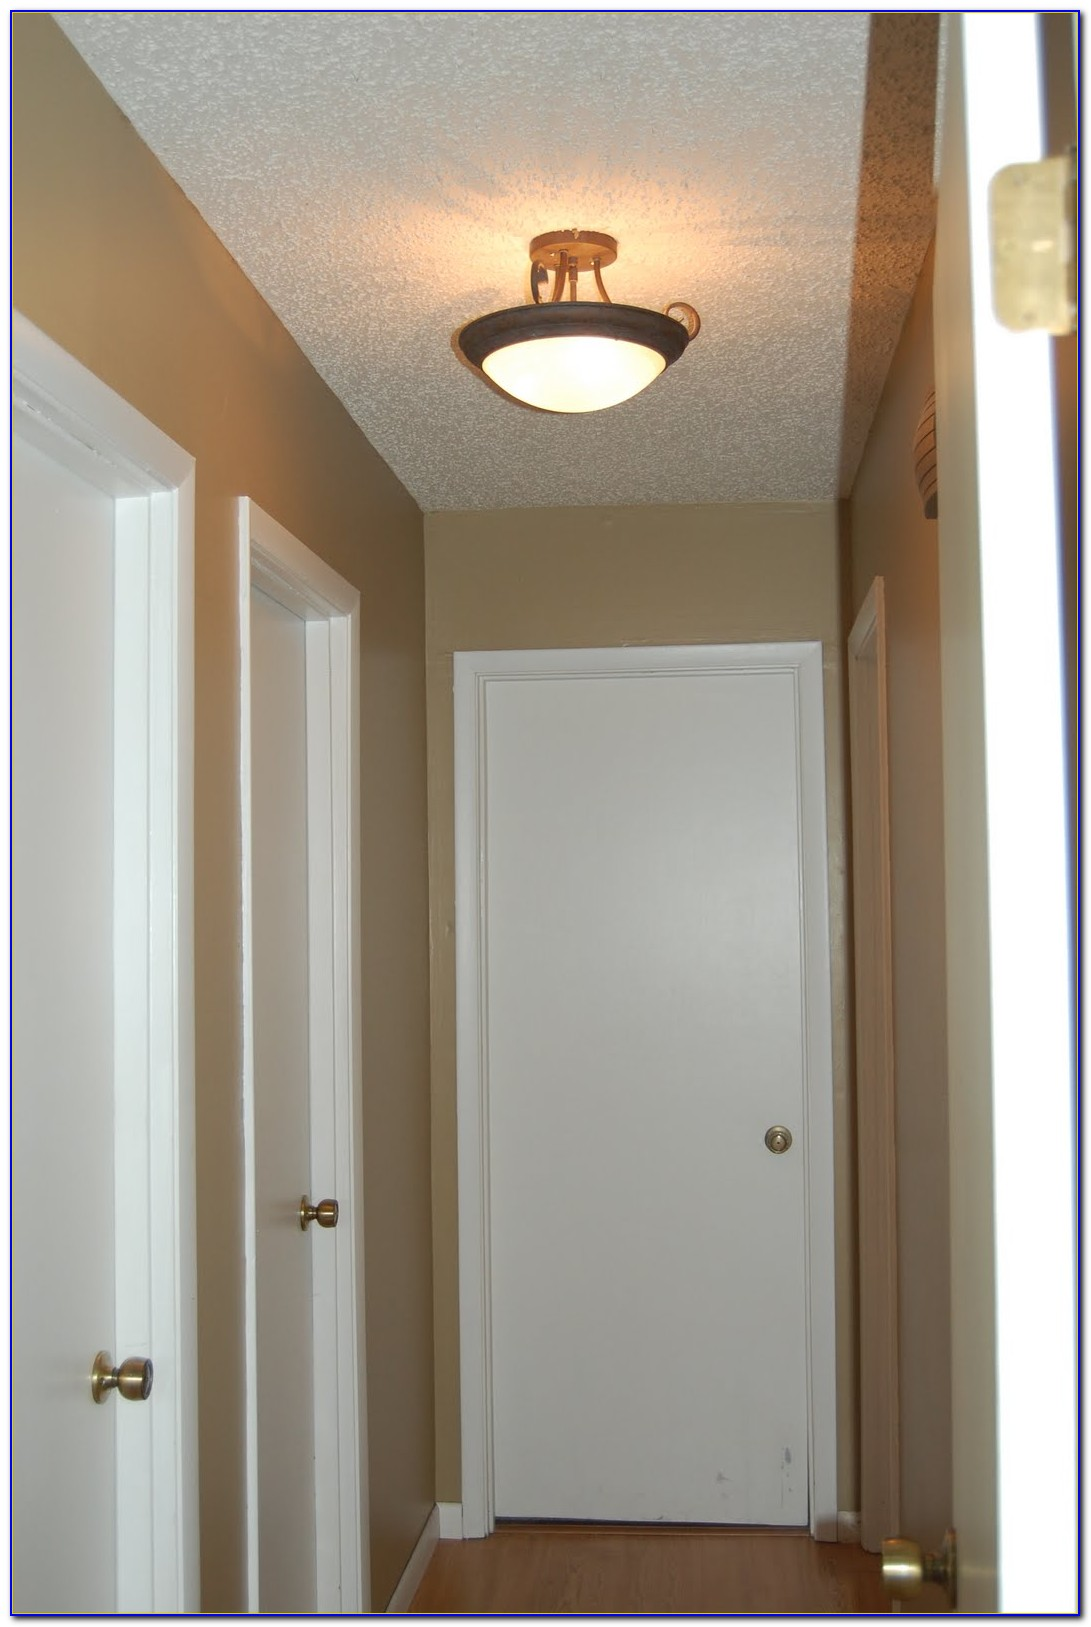 Hallway Ceiling Light Fixtures